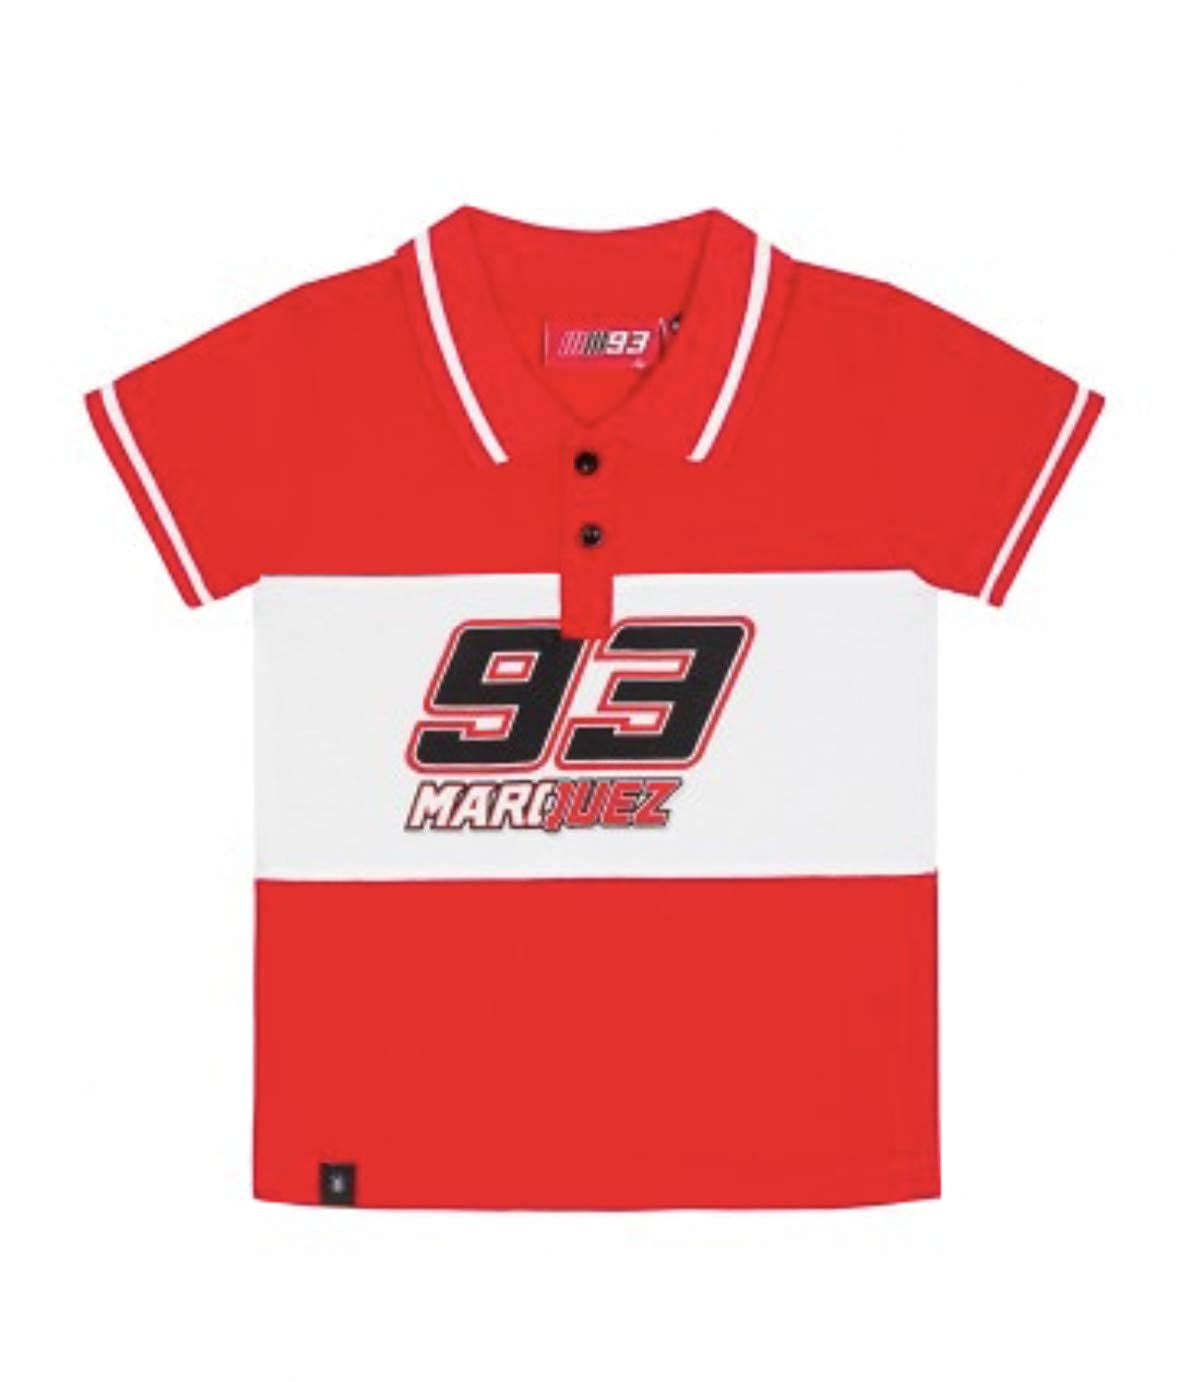 Marc Marquez 93 MotoGP Childrens Polo Shirt Kids Boys Age 2-11 Located in USA